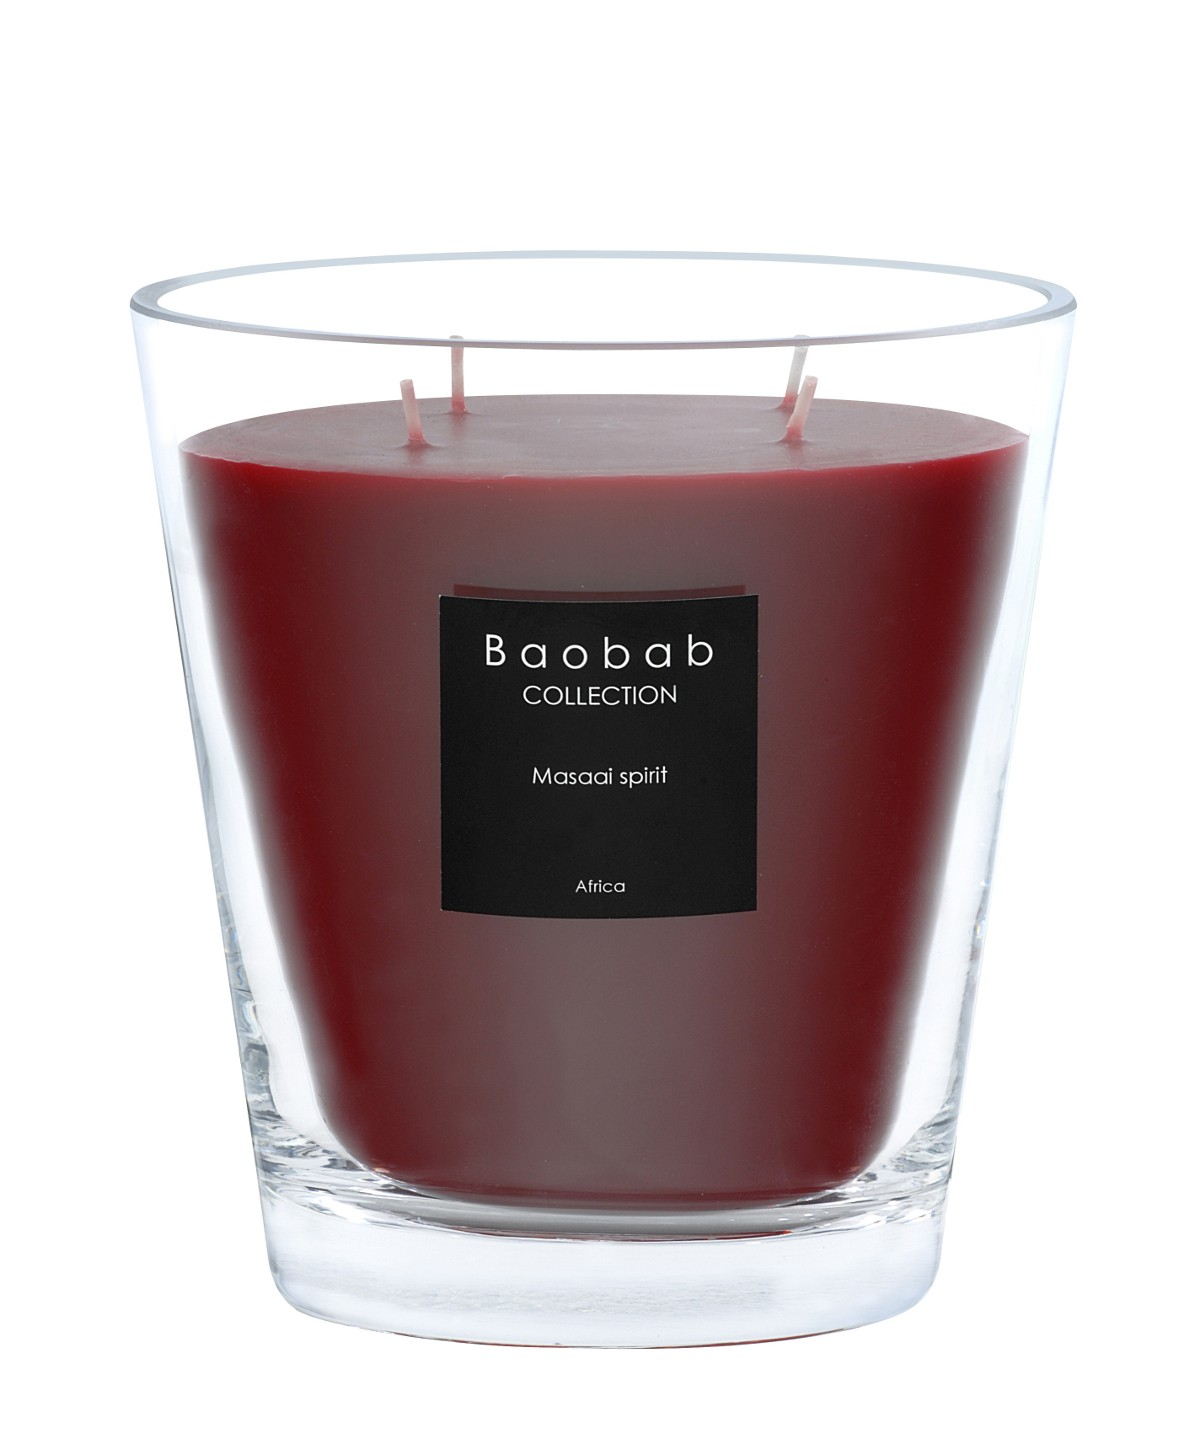 Bougie Baobab Paris Bougie Max 16 Masaai Spirit De Baobab Collection